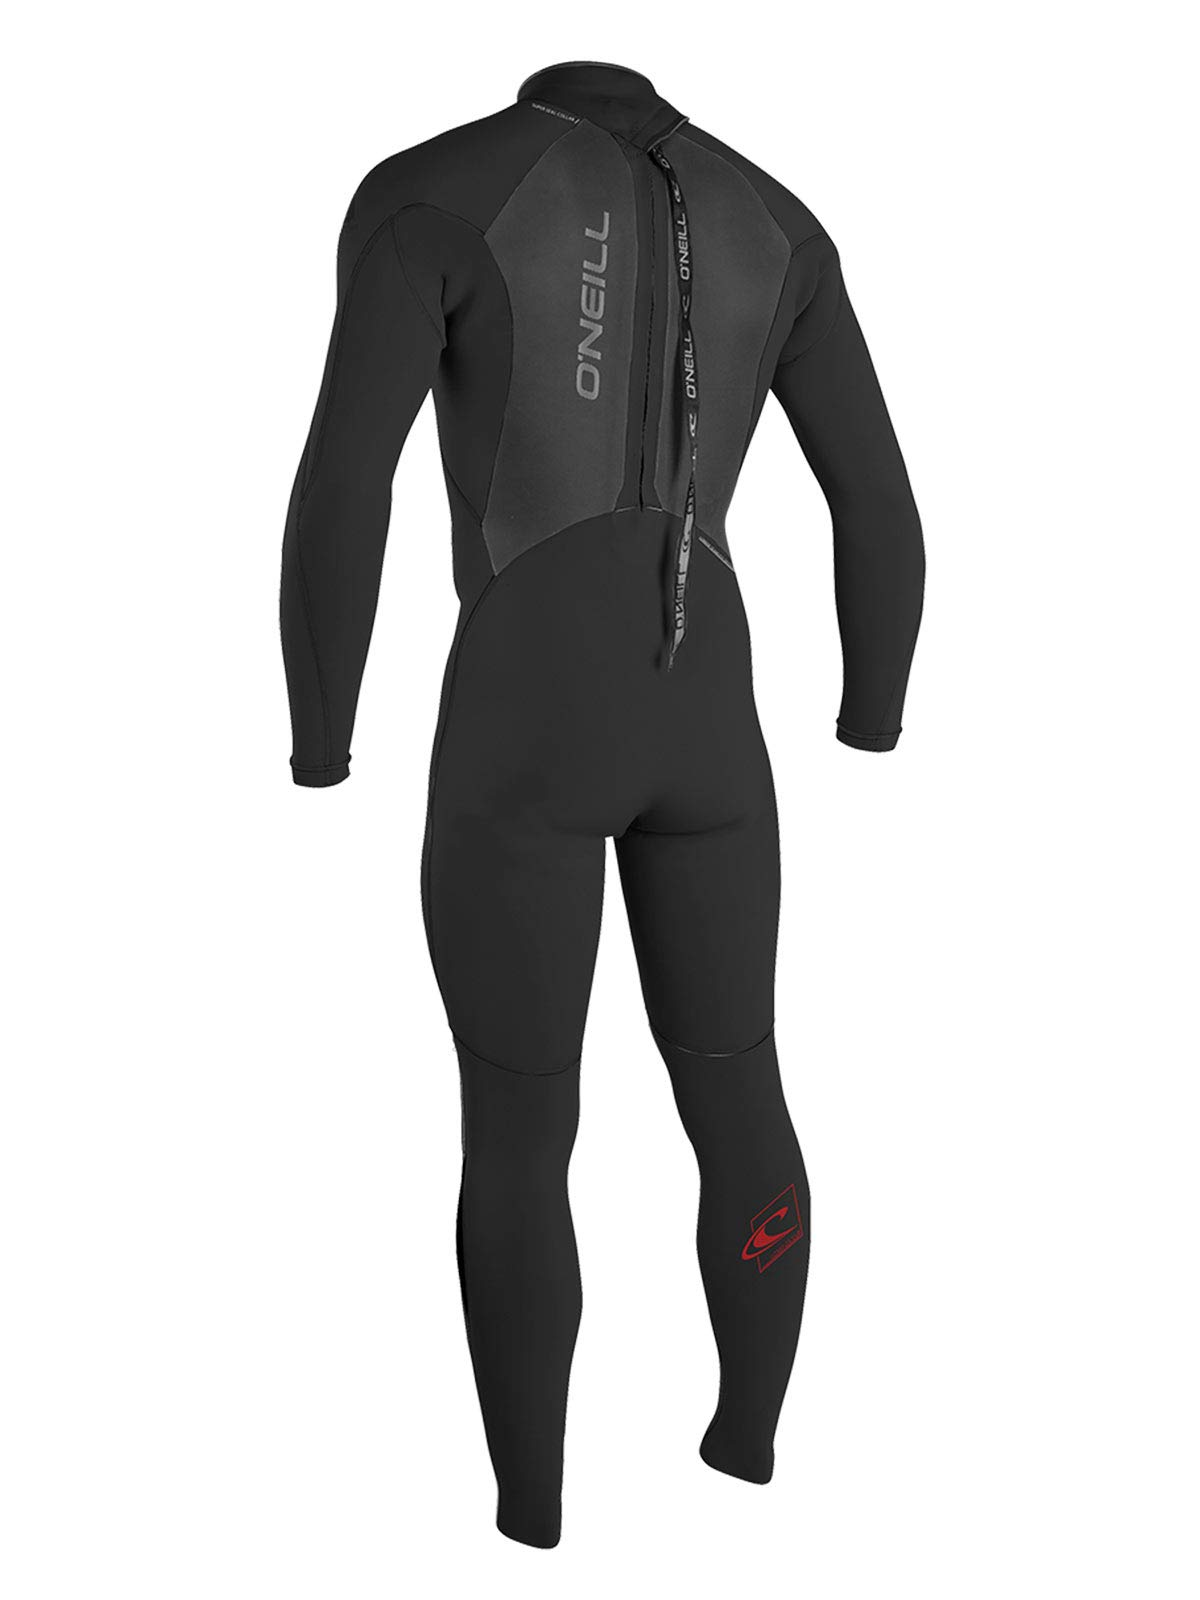 O'Neill Men's Epic 4/3mm Full Wetsuit (Black/Black/red, Small) by O'Neill Wetsuits (Image #3)